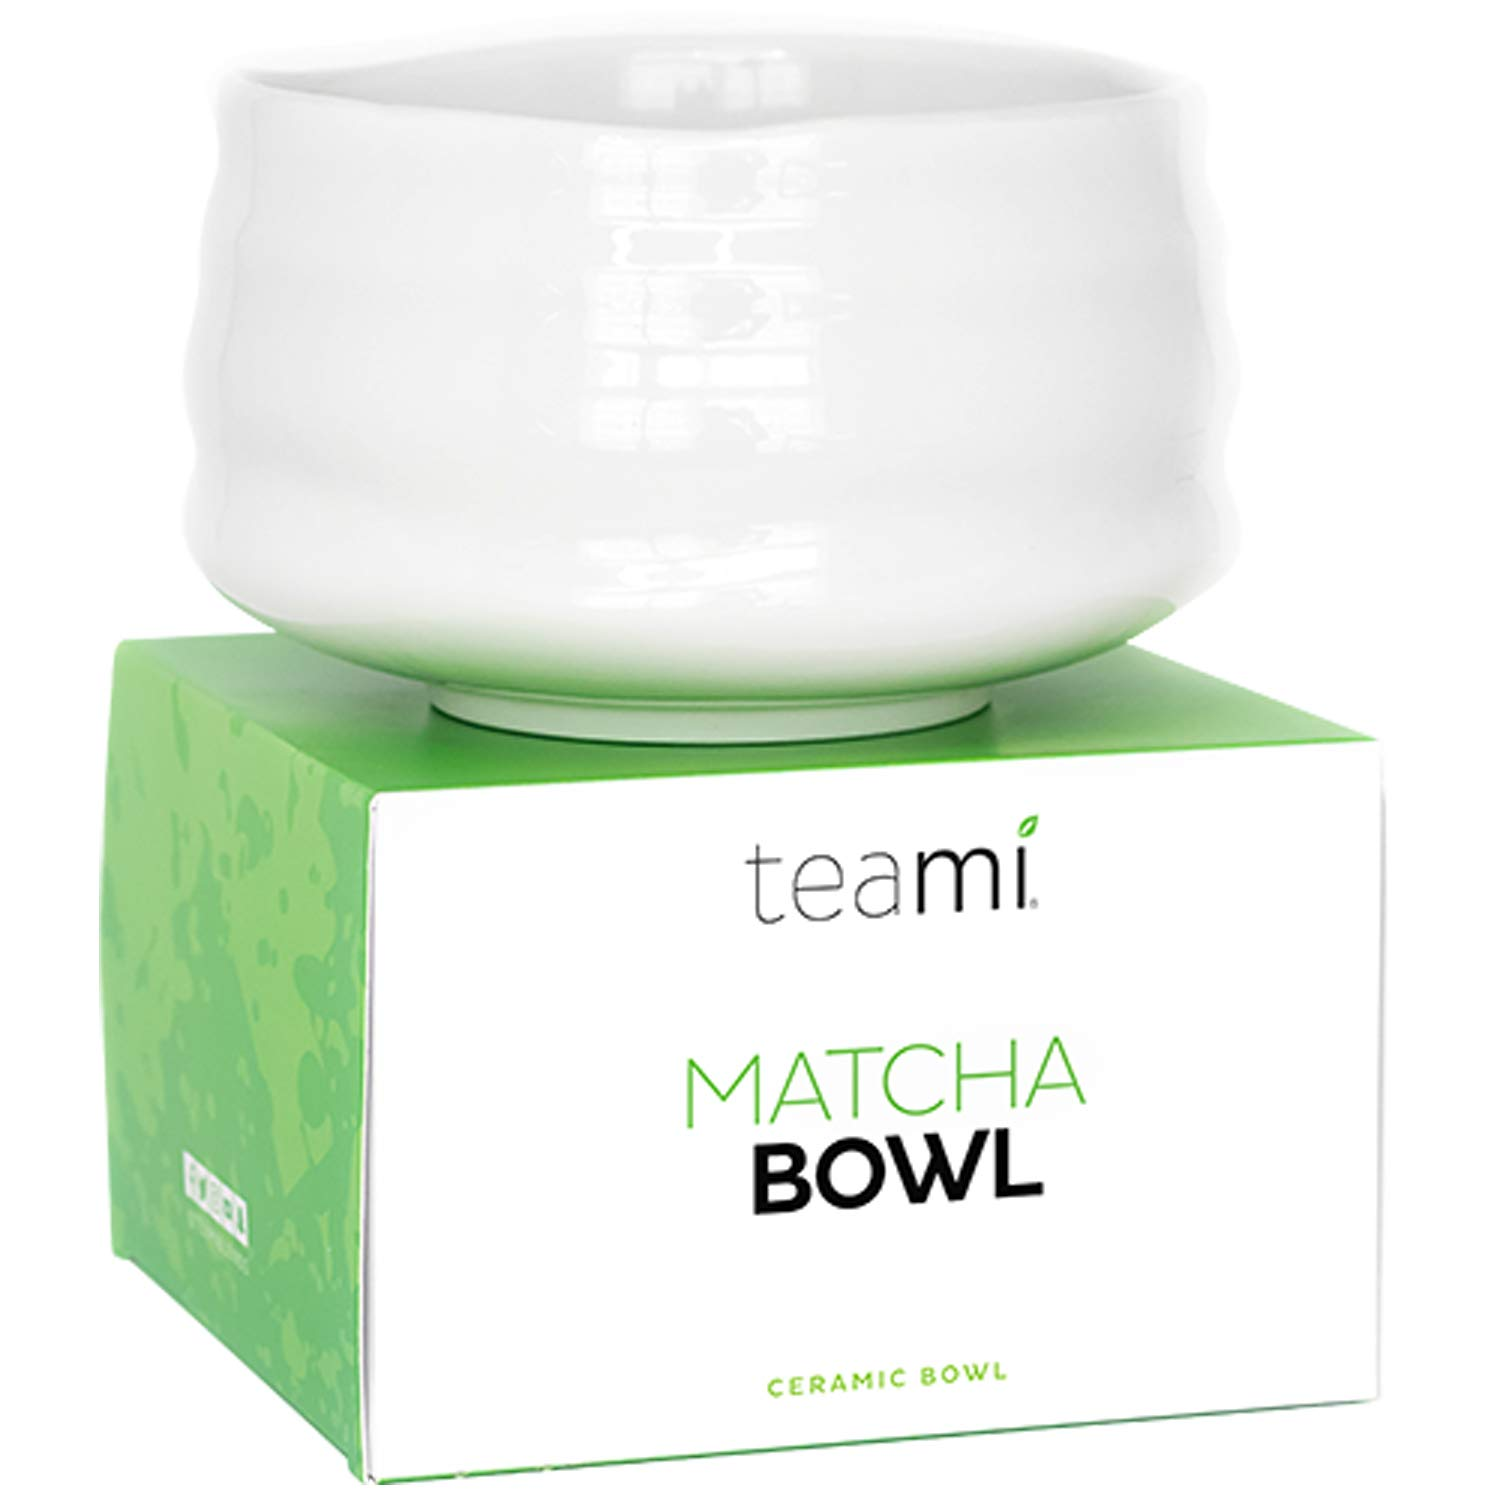 Teami Matcha Green Tea Bowl - Handcrafted for Traditional Japanese Ceremony and Everyday Use (Pearl White) by Teami